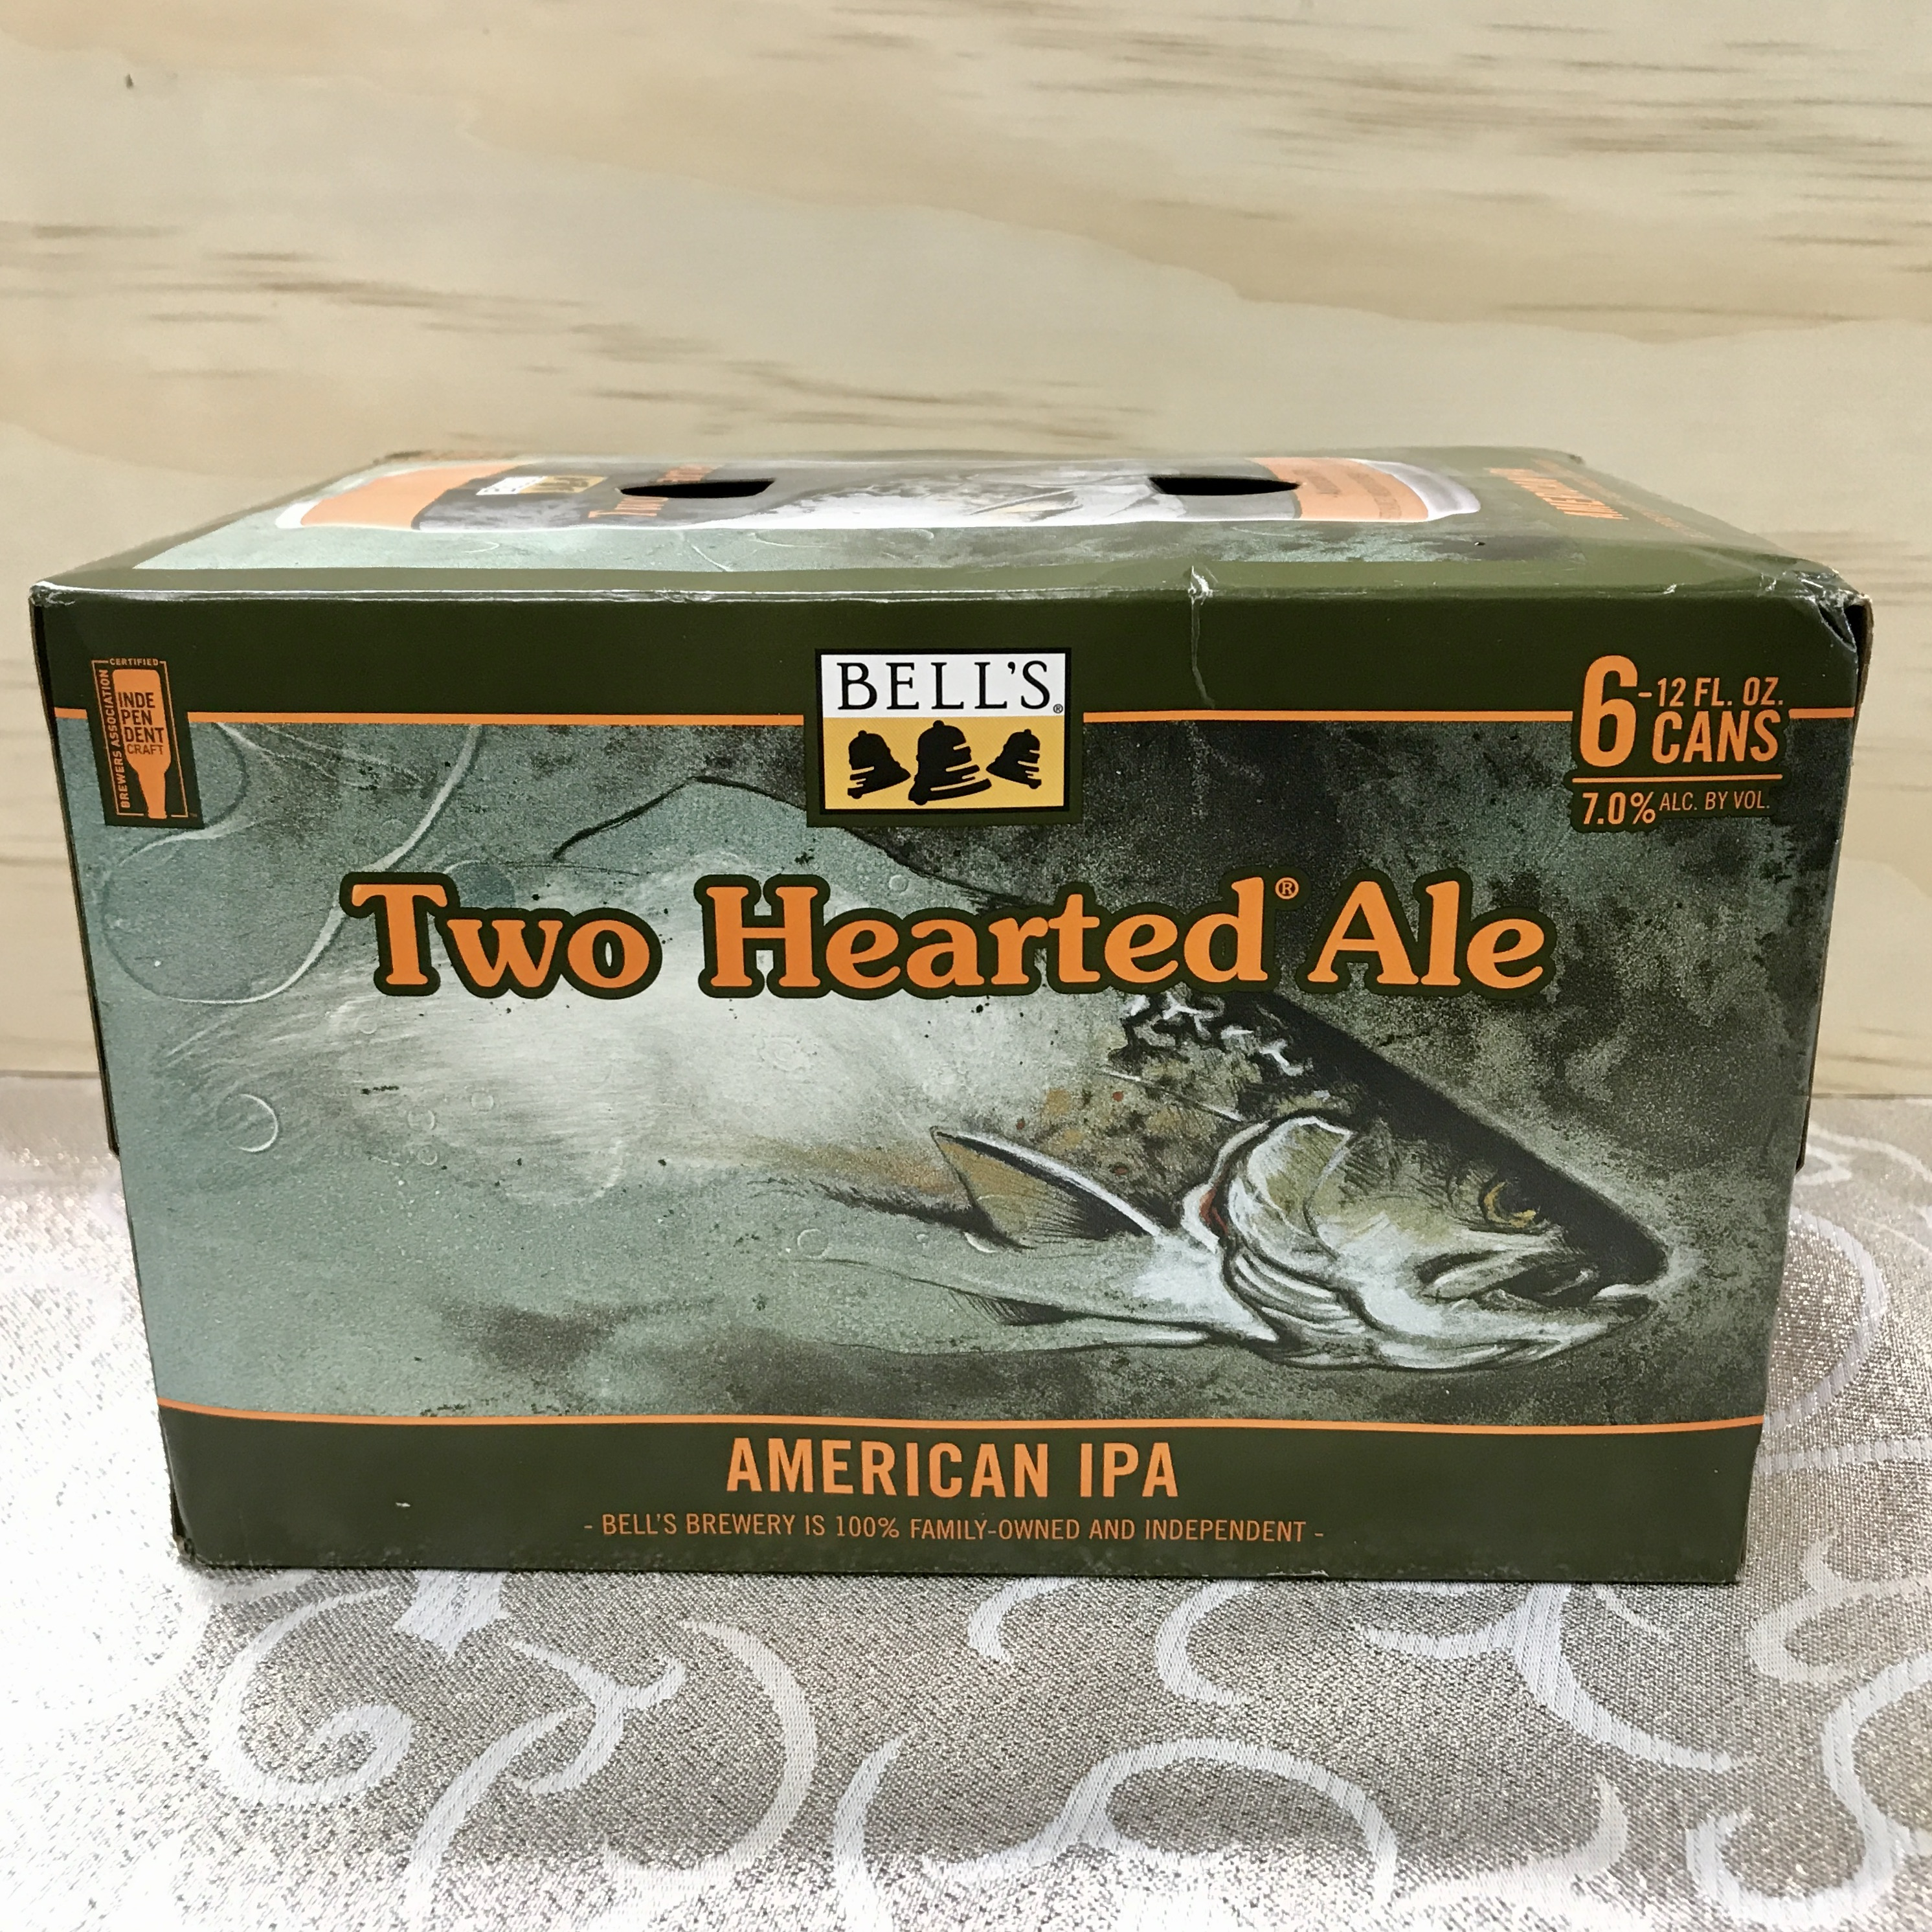 Bell's Two Hearted Ale American IPA 6pk/12oz cans